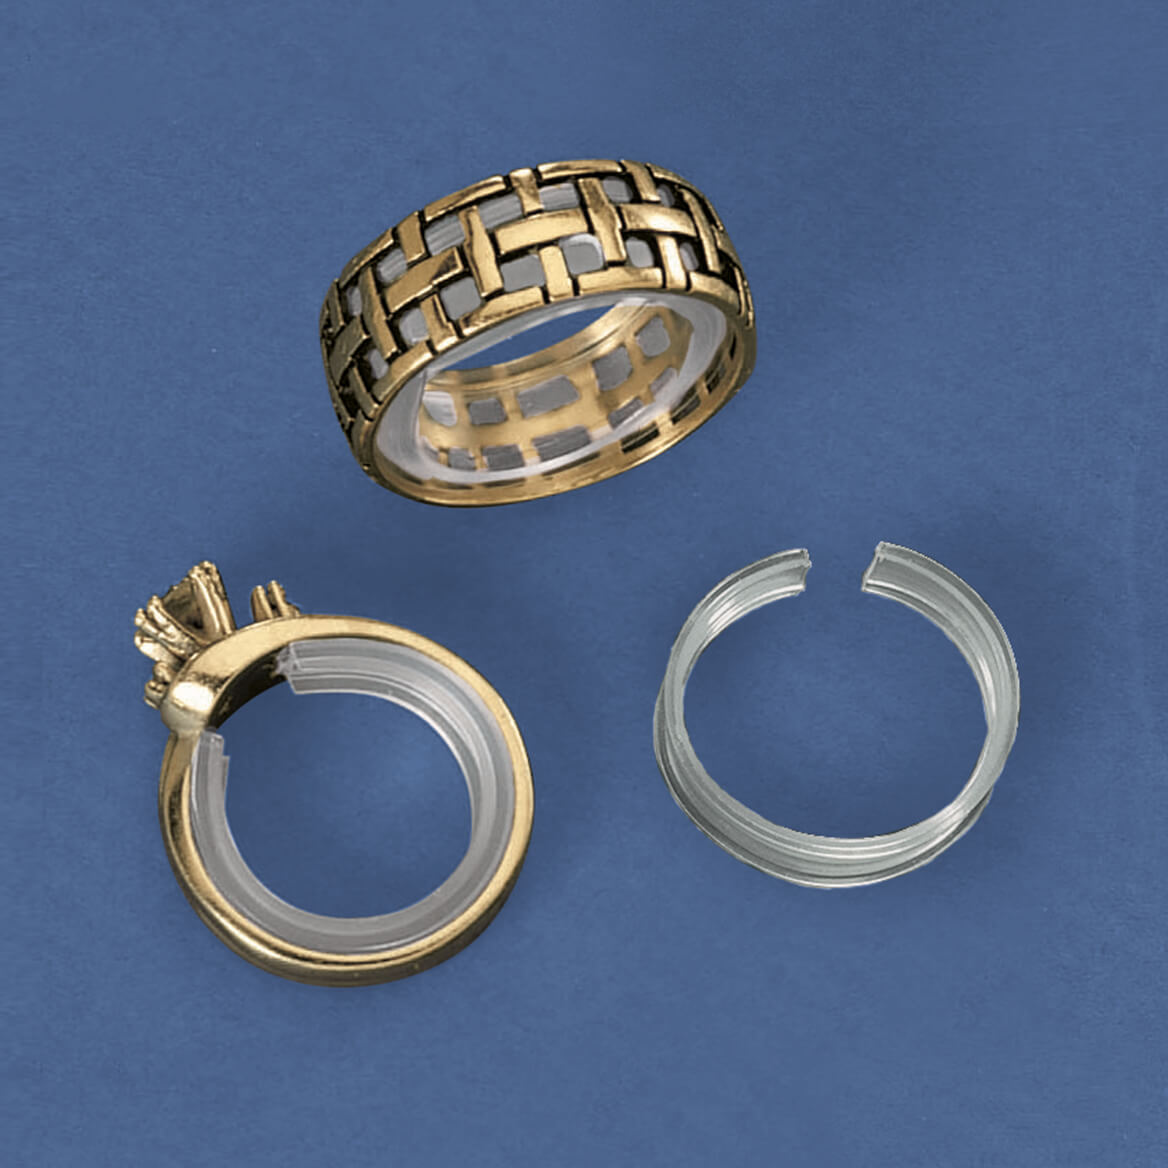 Ring Band Size Adjusters Set of 5-303150